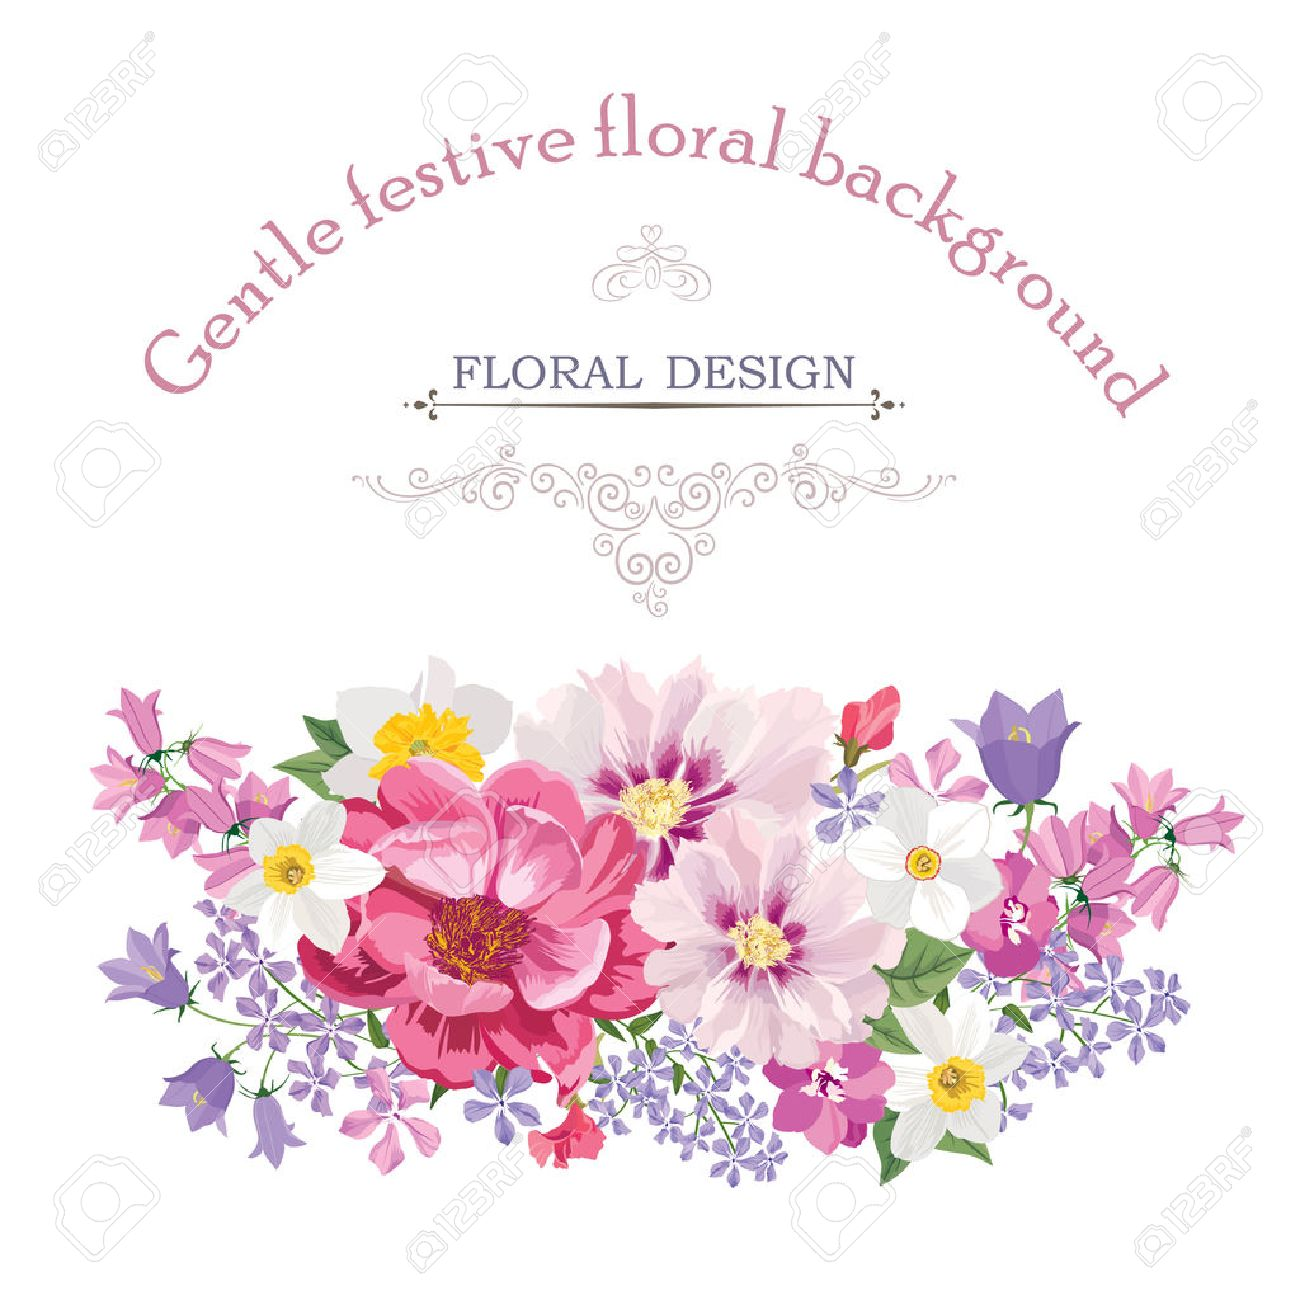 Floral frame with summer flowers. Floral bouquet with rose, narcissus, carnation, lilac and wildflower. Vintage Greeting Card with flowers. Watercolor flourish border. Floral background. Stock Vector - 46073574